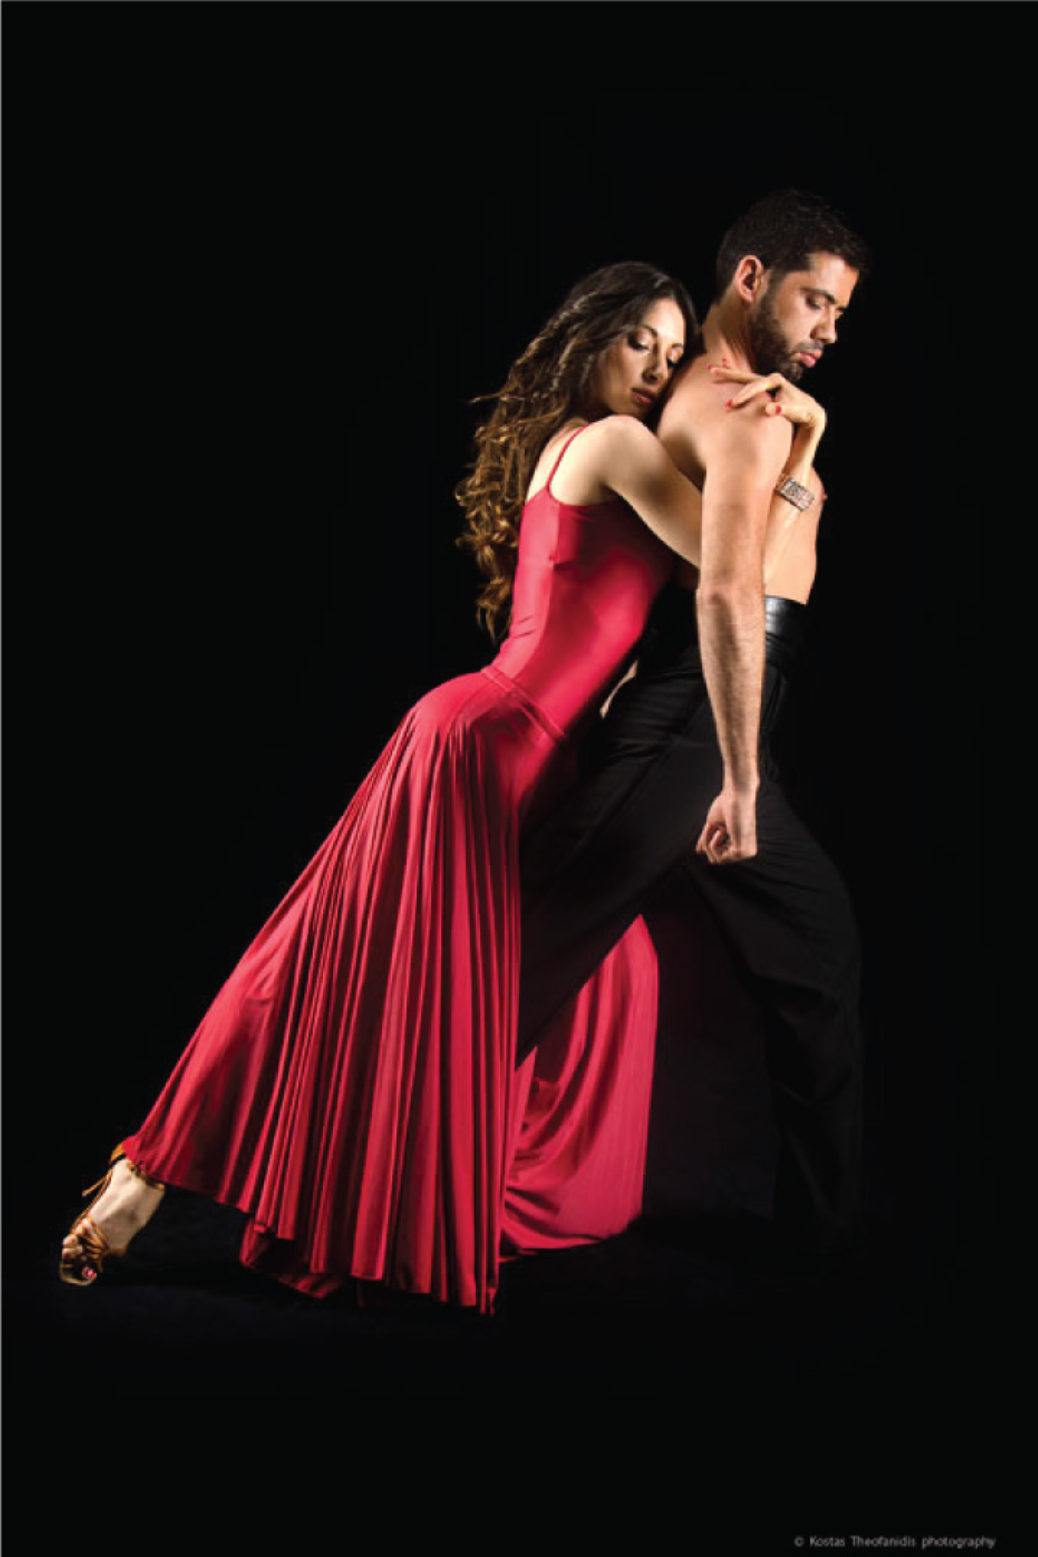 The Latin dance of love